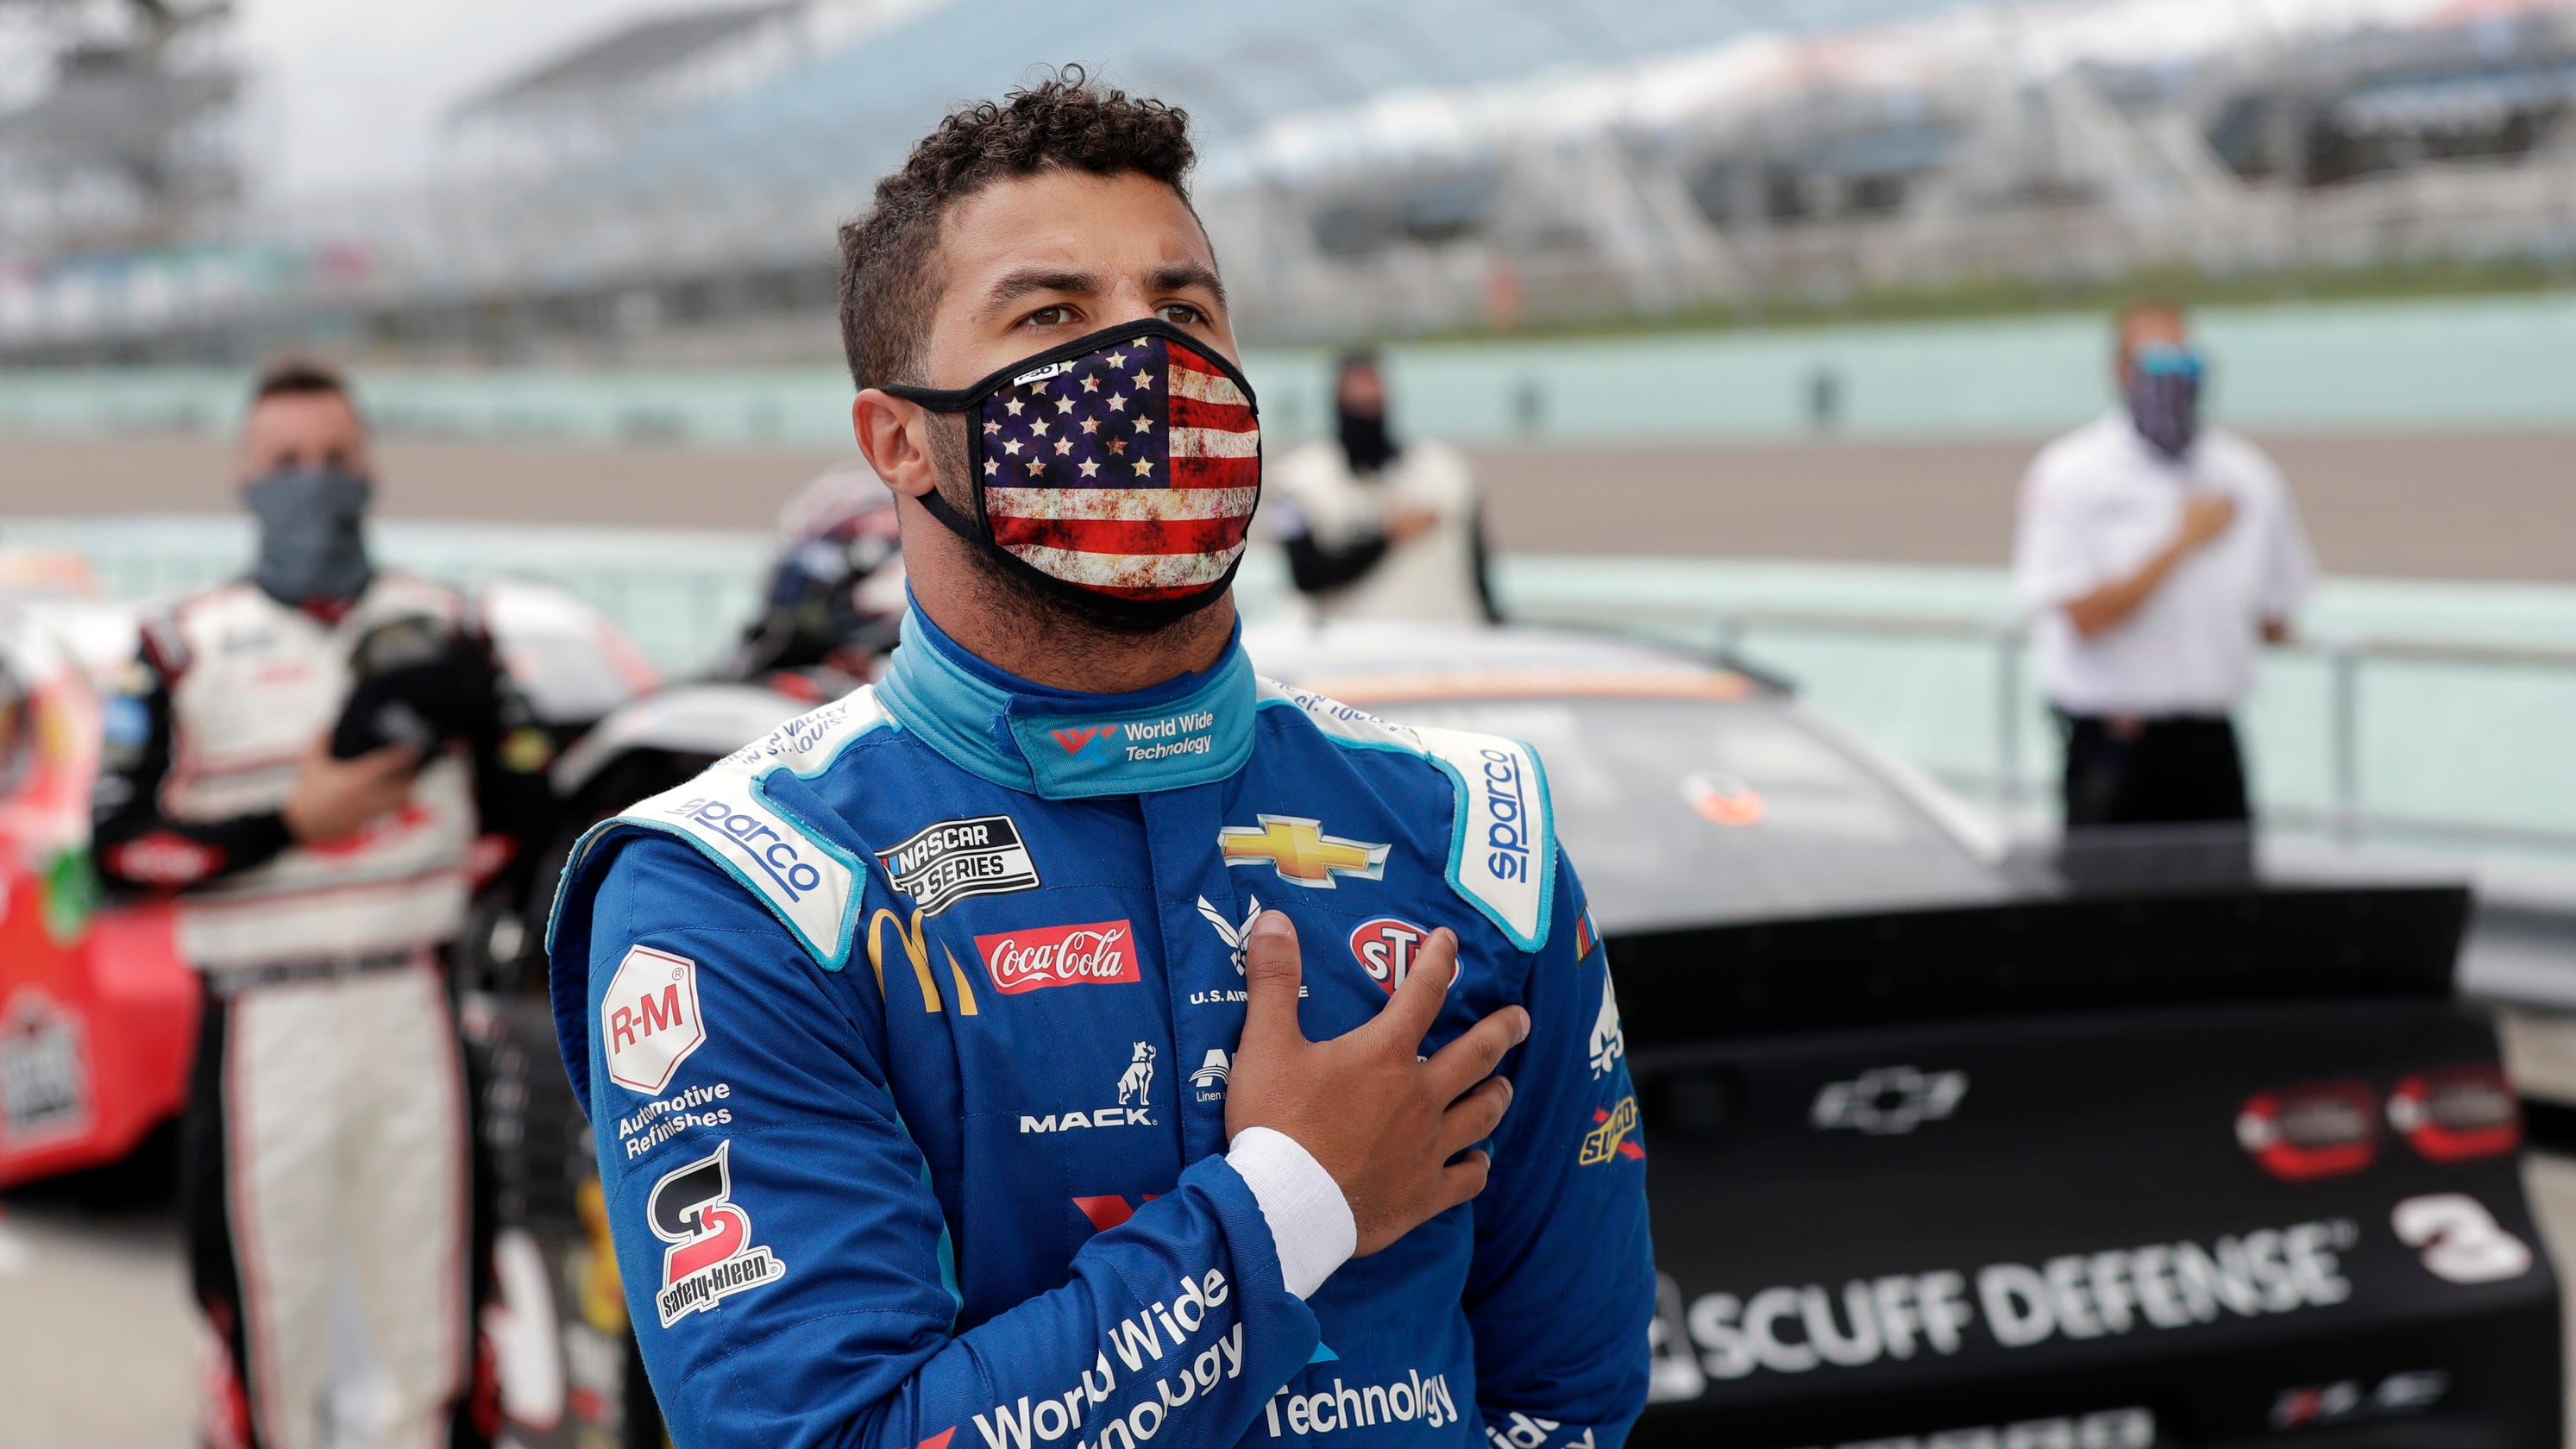 Noose in Bubba Wallace's garage strengthens resolve to fight racism